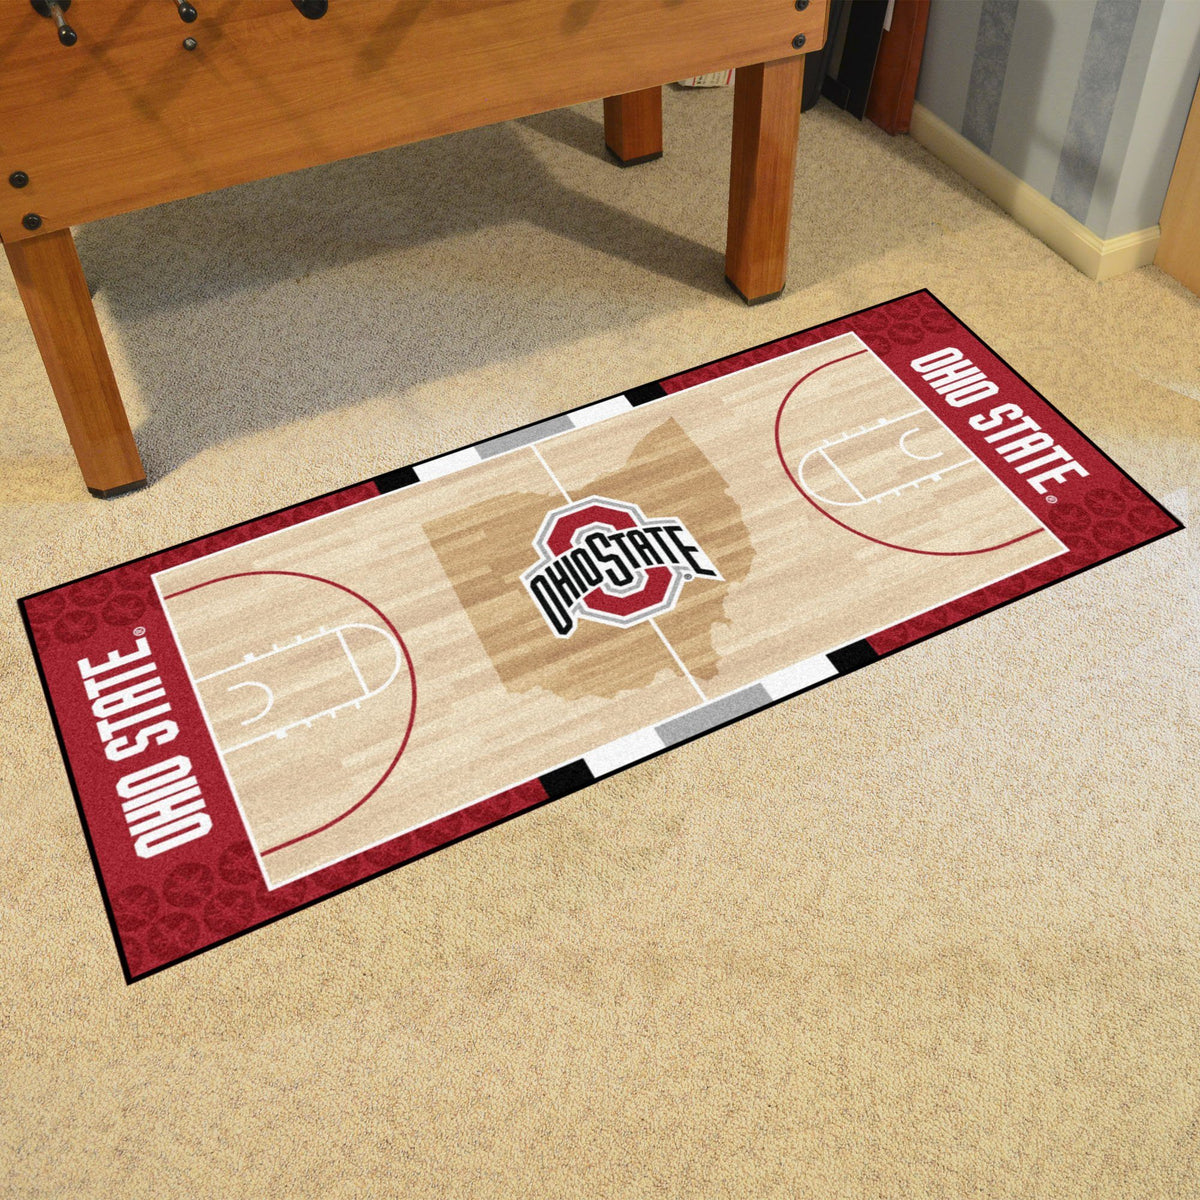 Collegiate - NCAA Basketball Runner Collegiate Mats, Rectangular Mats, NCAA Basketball Runner, Collegiate, Home Fan Mats Ohio State